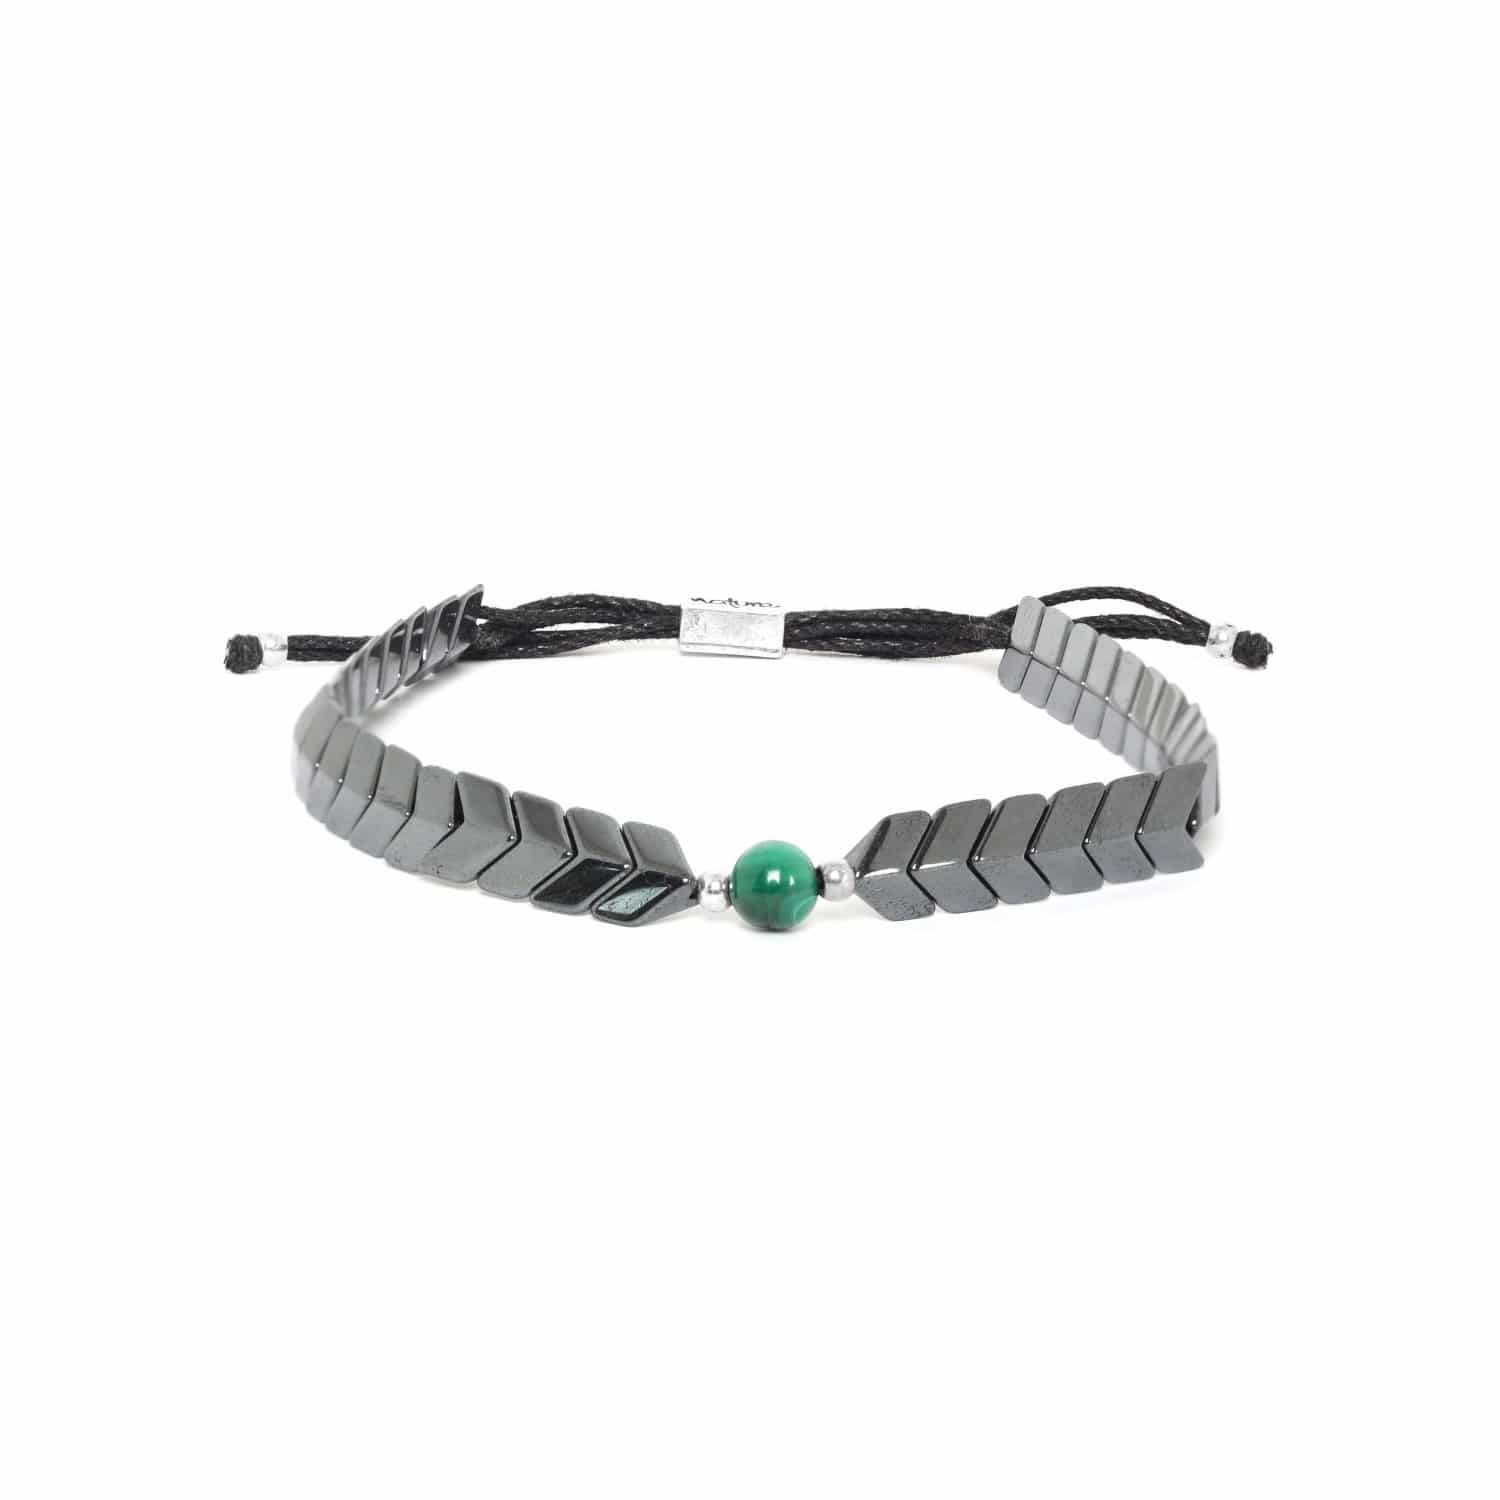 CAPORAL hematite adjustable bracelet green